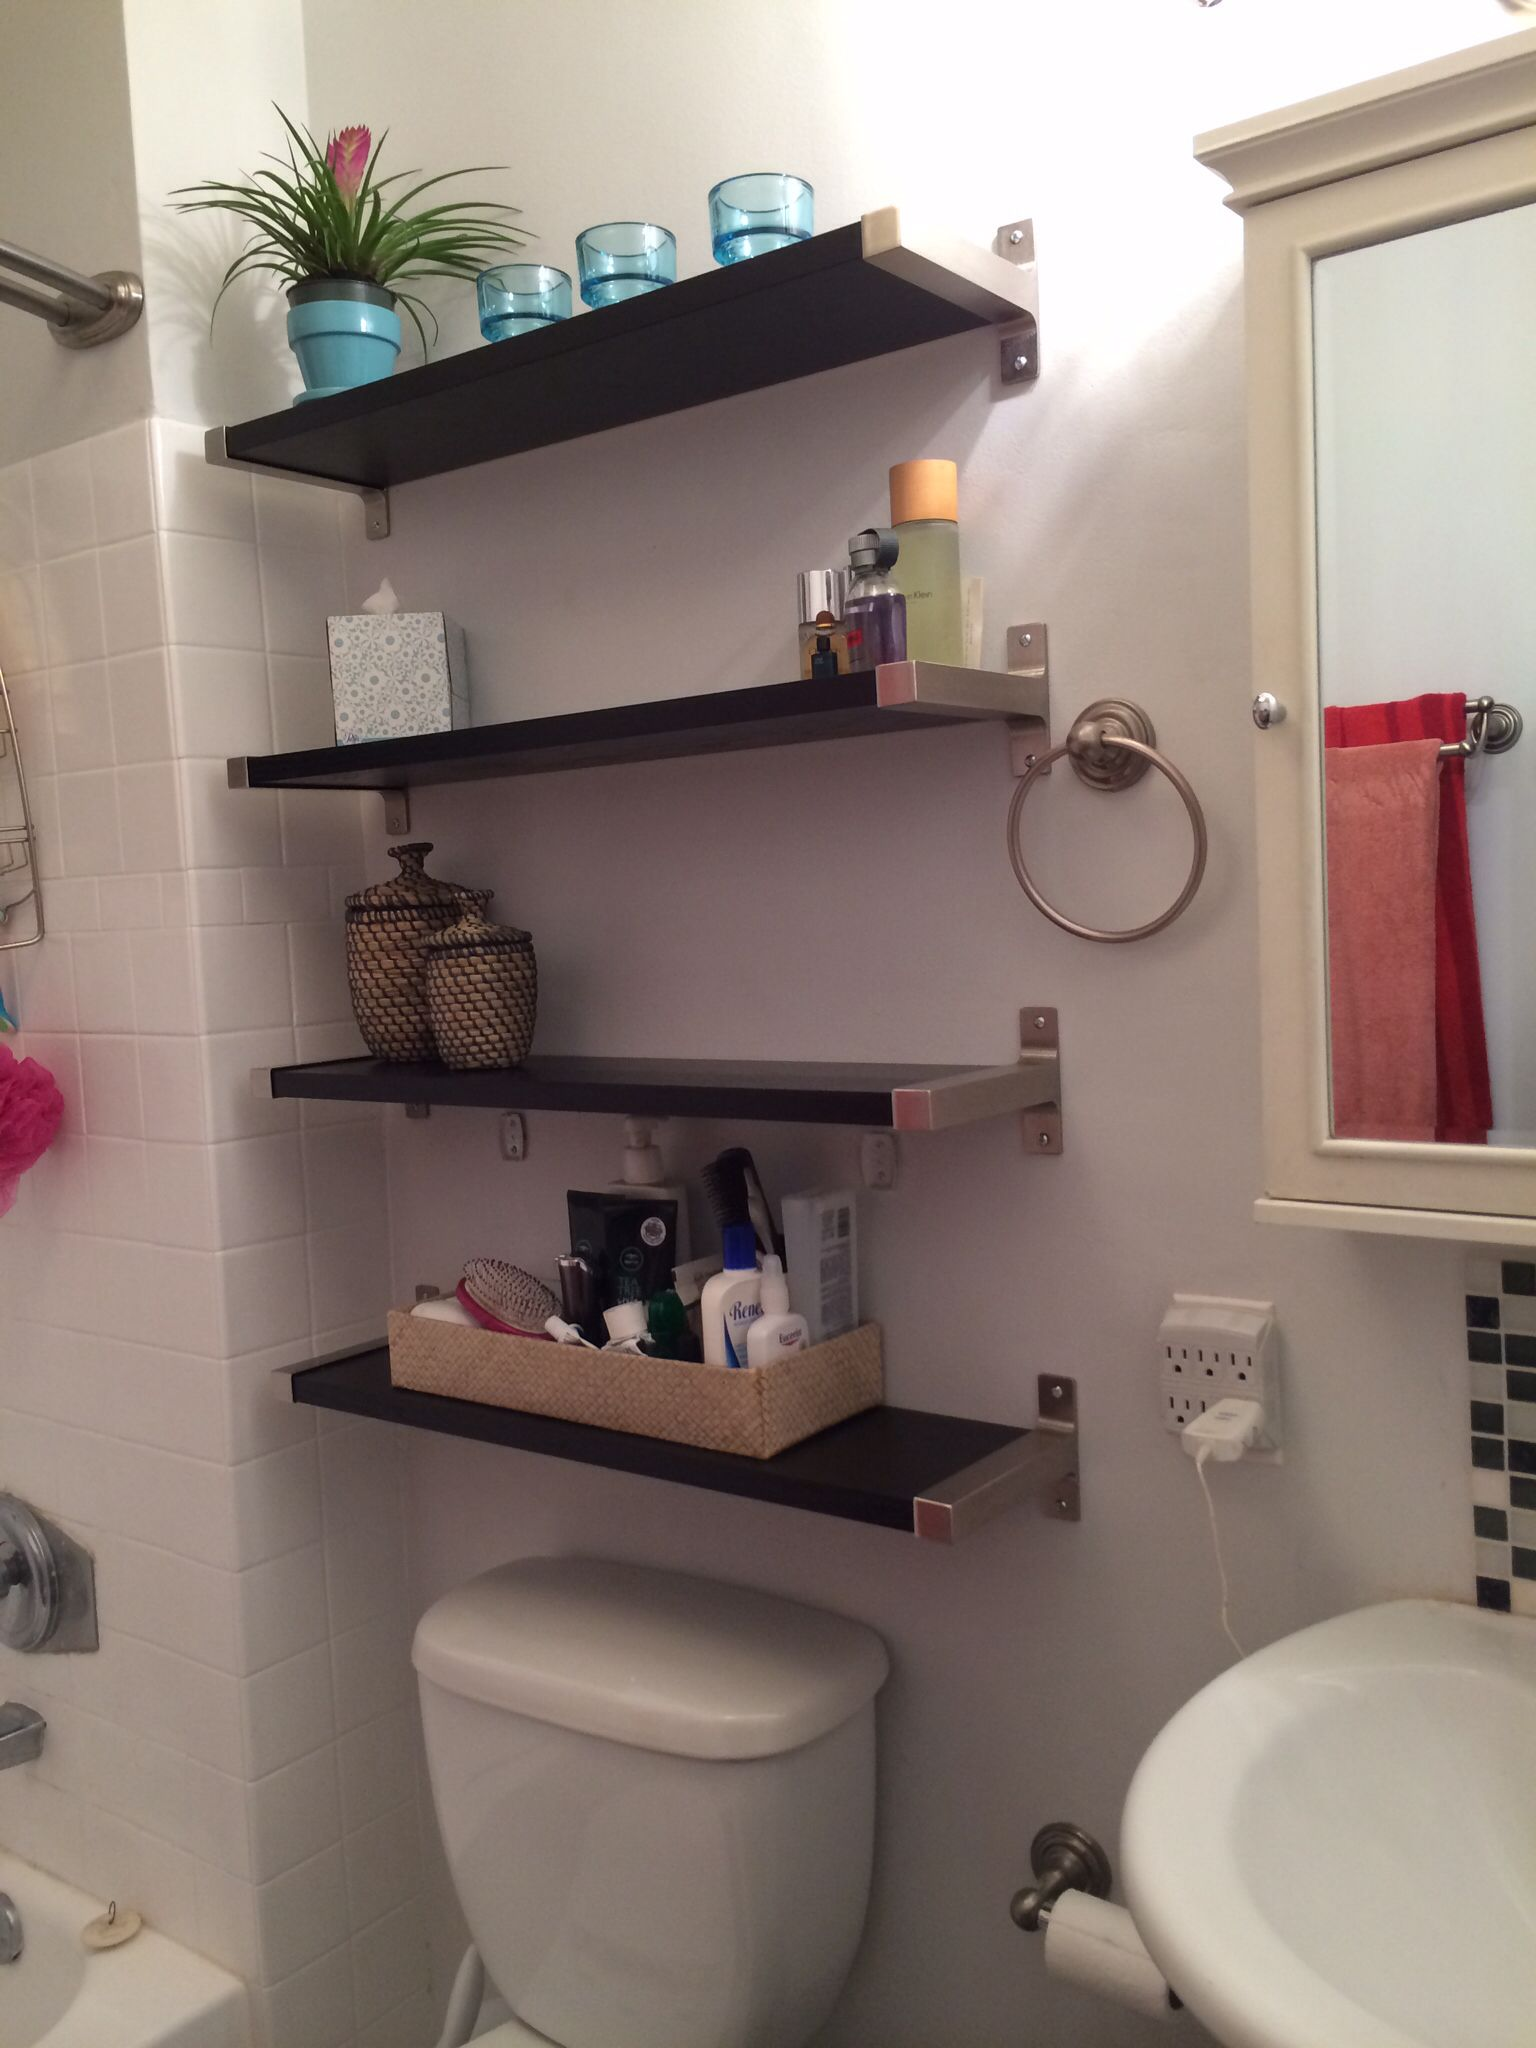 small bathroom solutions ikea shelves floating for kitchen shelf with hooks island ideas kitchens cast iron support brackets modular shelving large wood mantel hall clothes rack